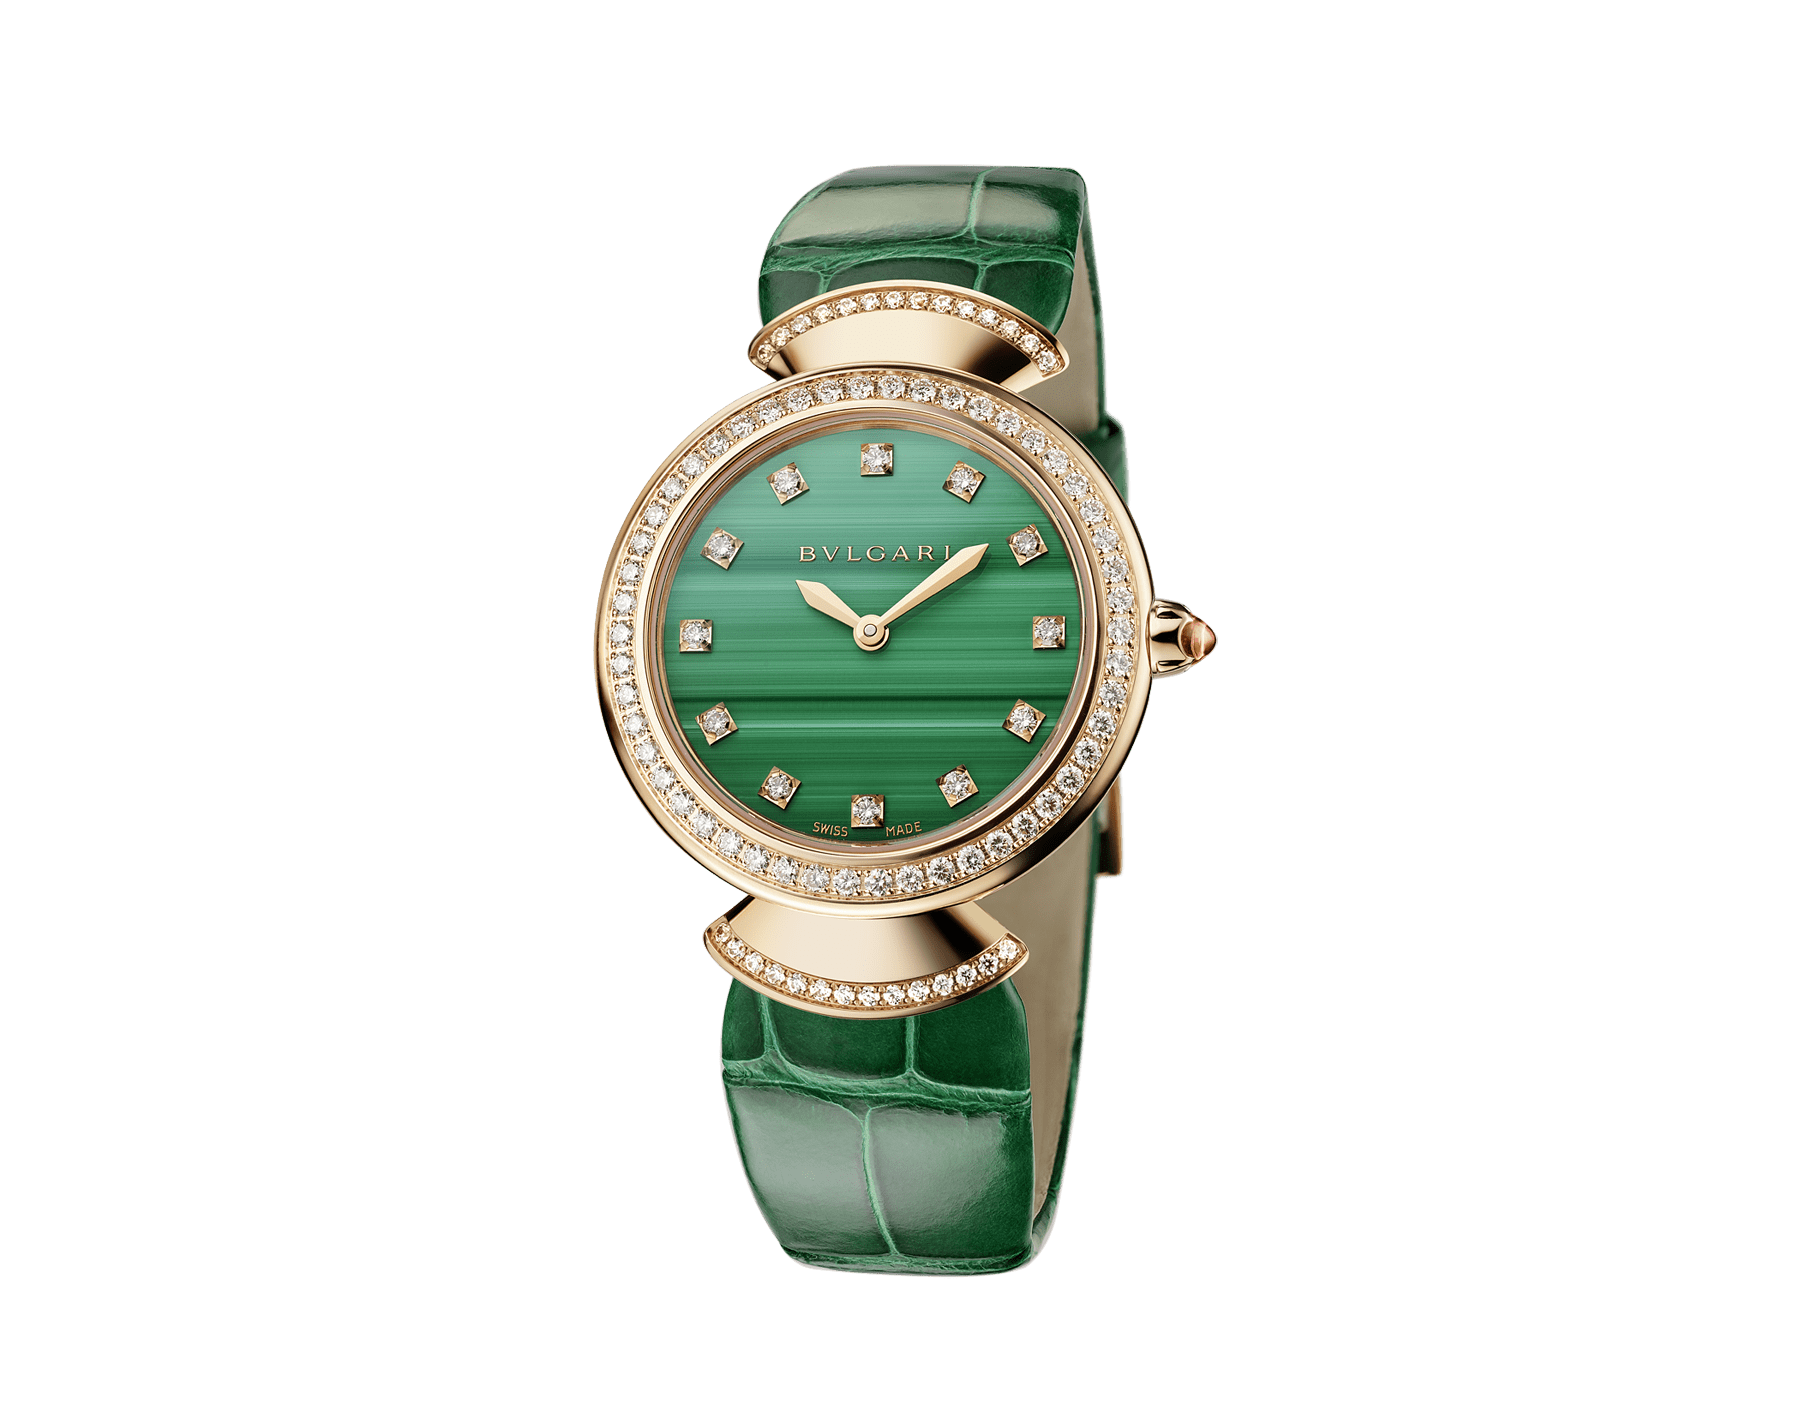 DIVAS' DREAM watch with 18 kt rose gold case, 18 kt rose gold bezel and fan-shaped links both set with brilliant-cut diamonds, malachite dial, diamond indexes and green alligator strap 103119 image 2